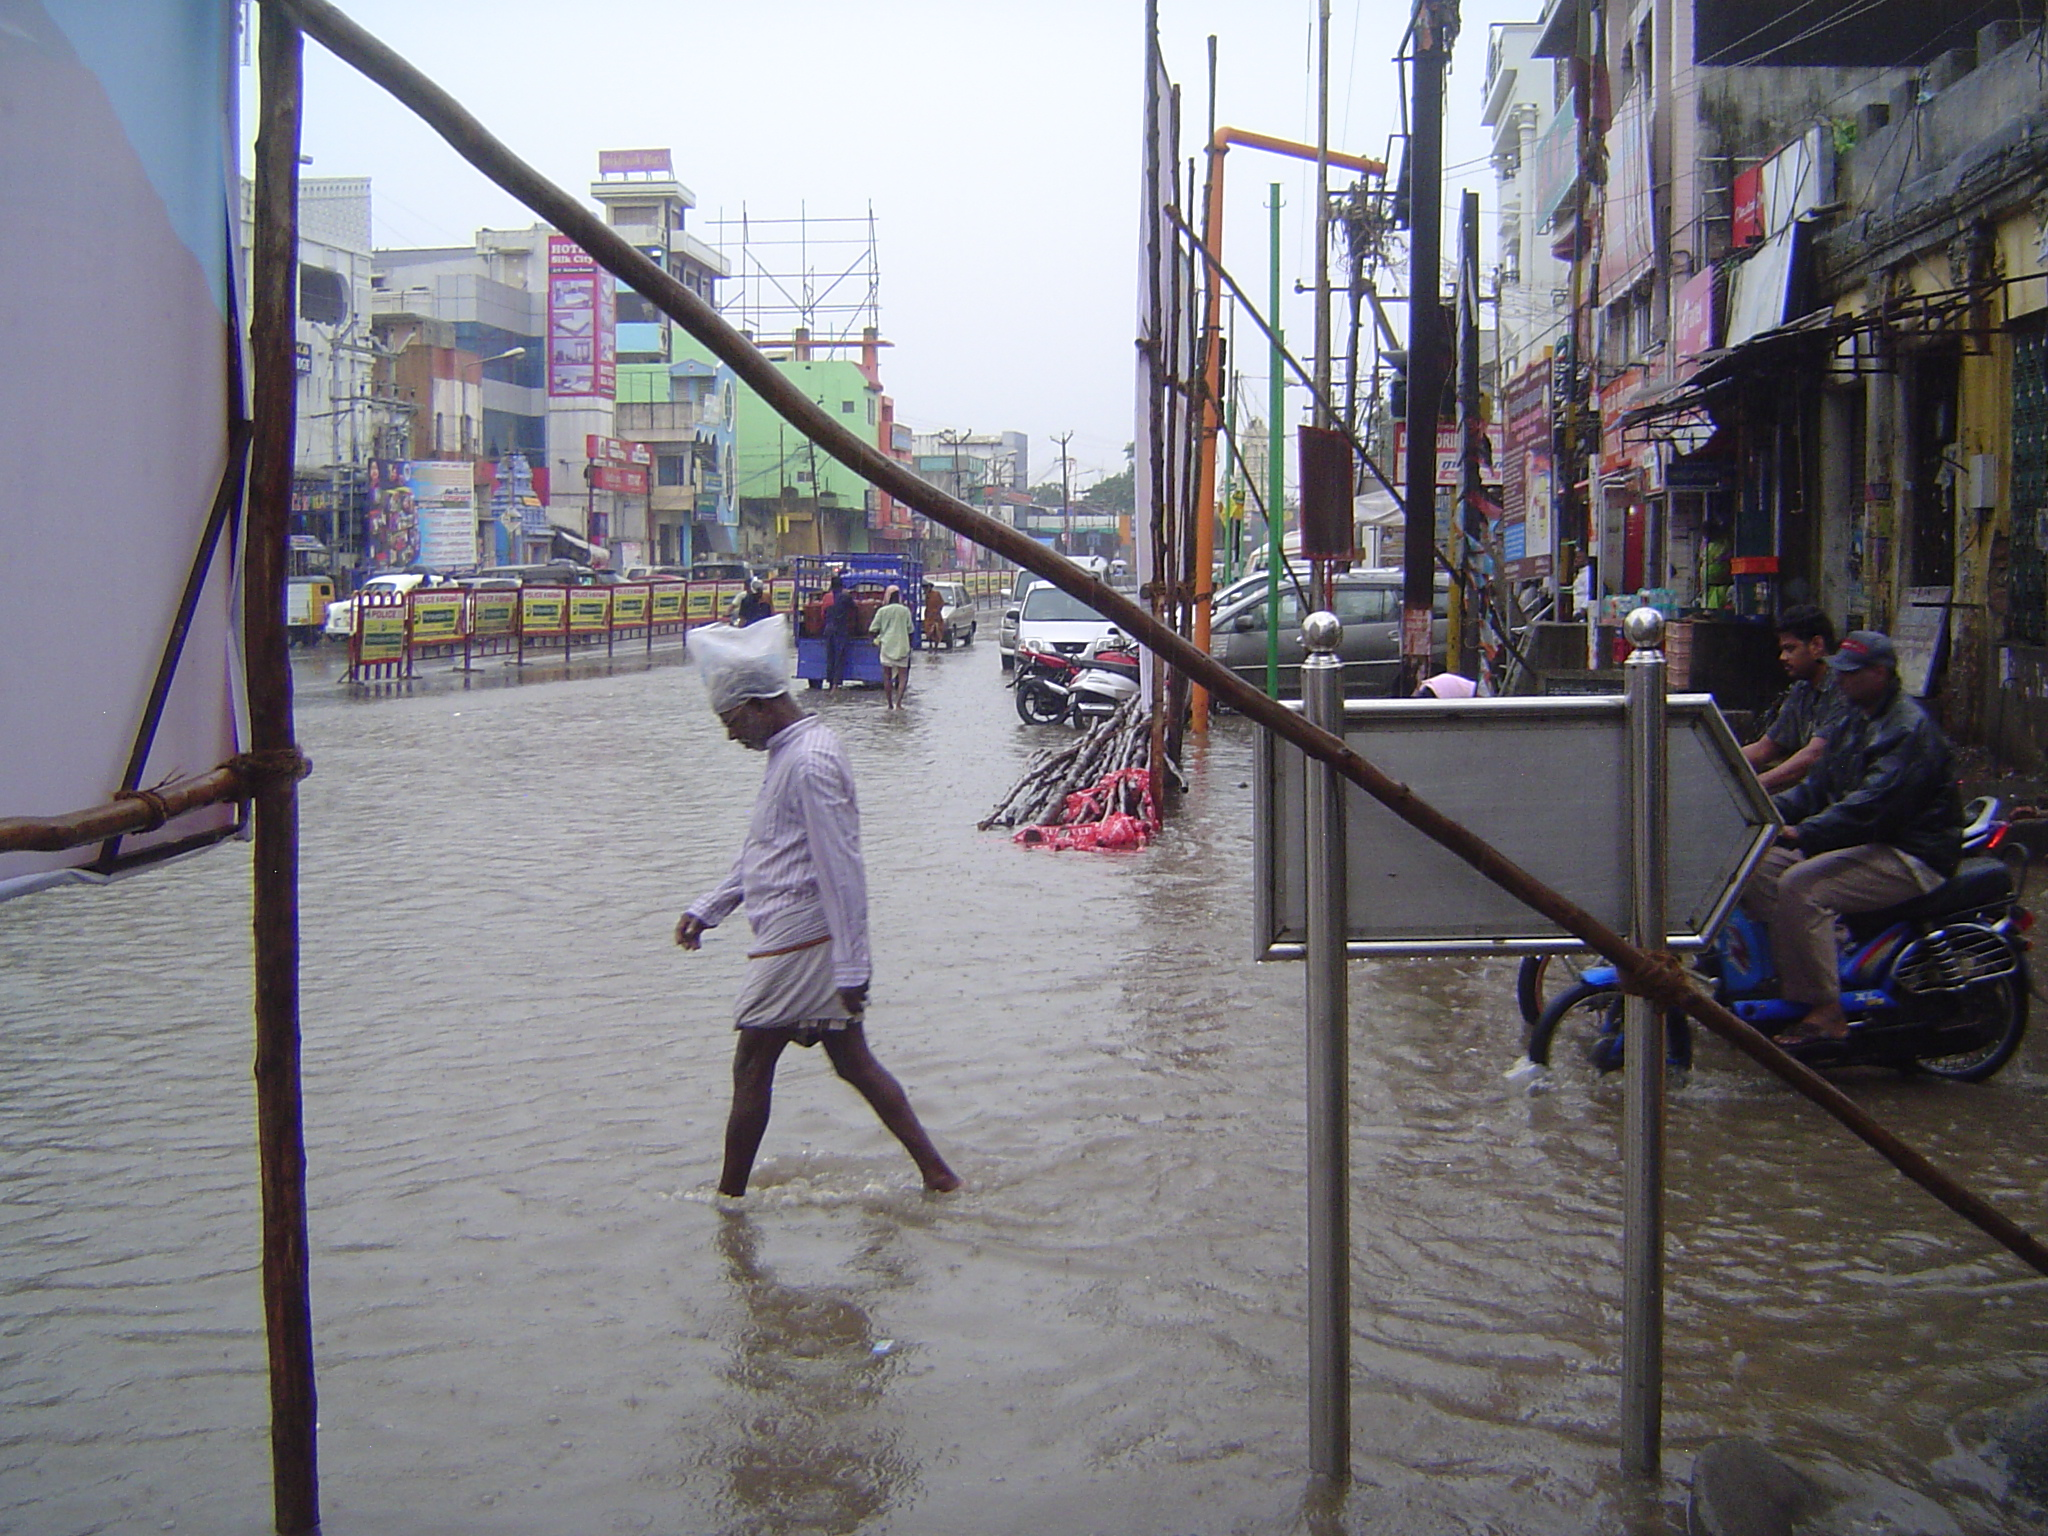 Peninsular India: Monsoon in Kanchipuram